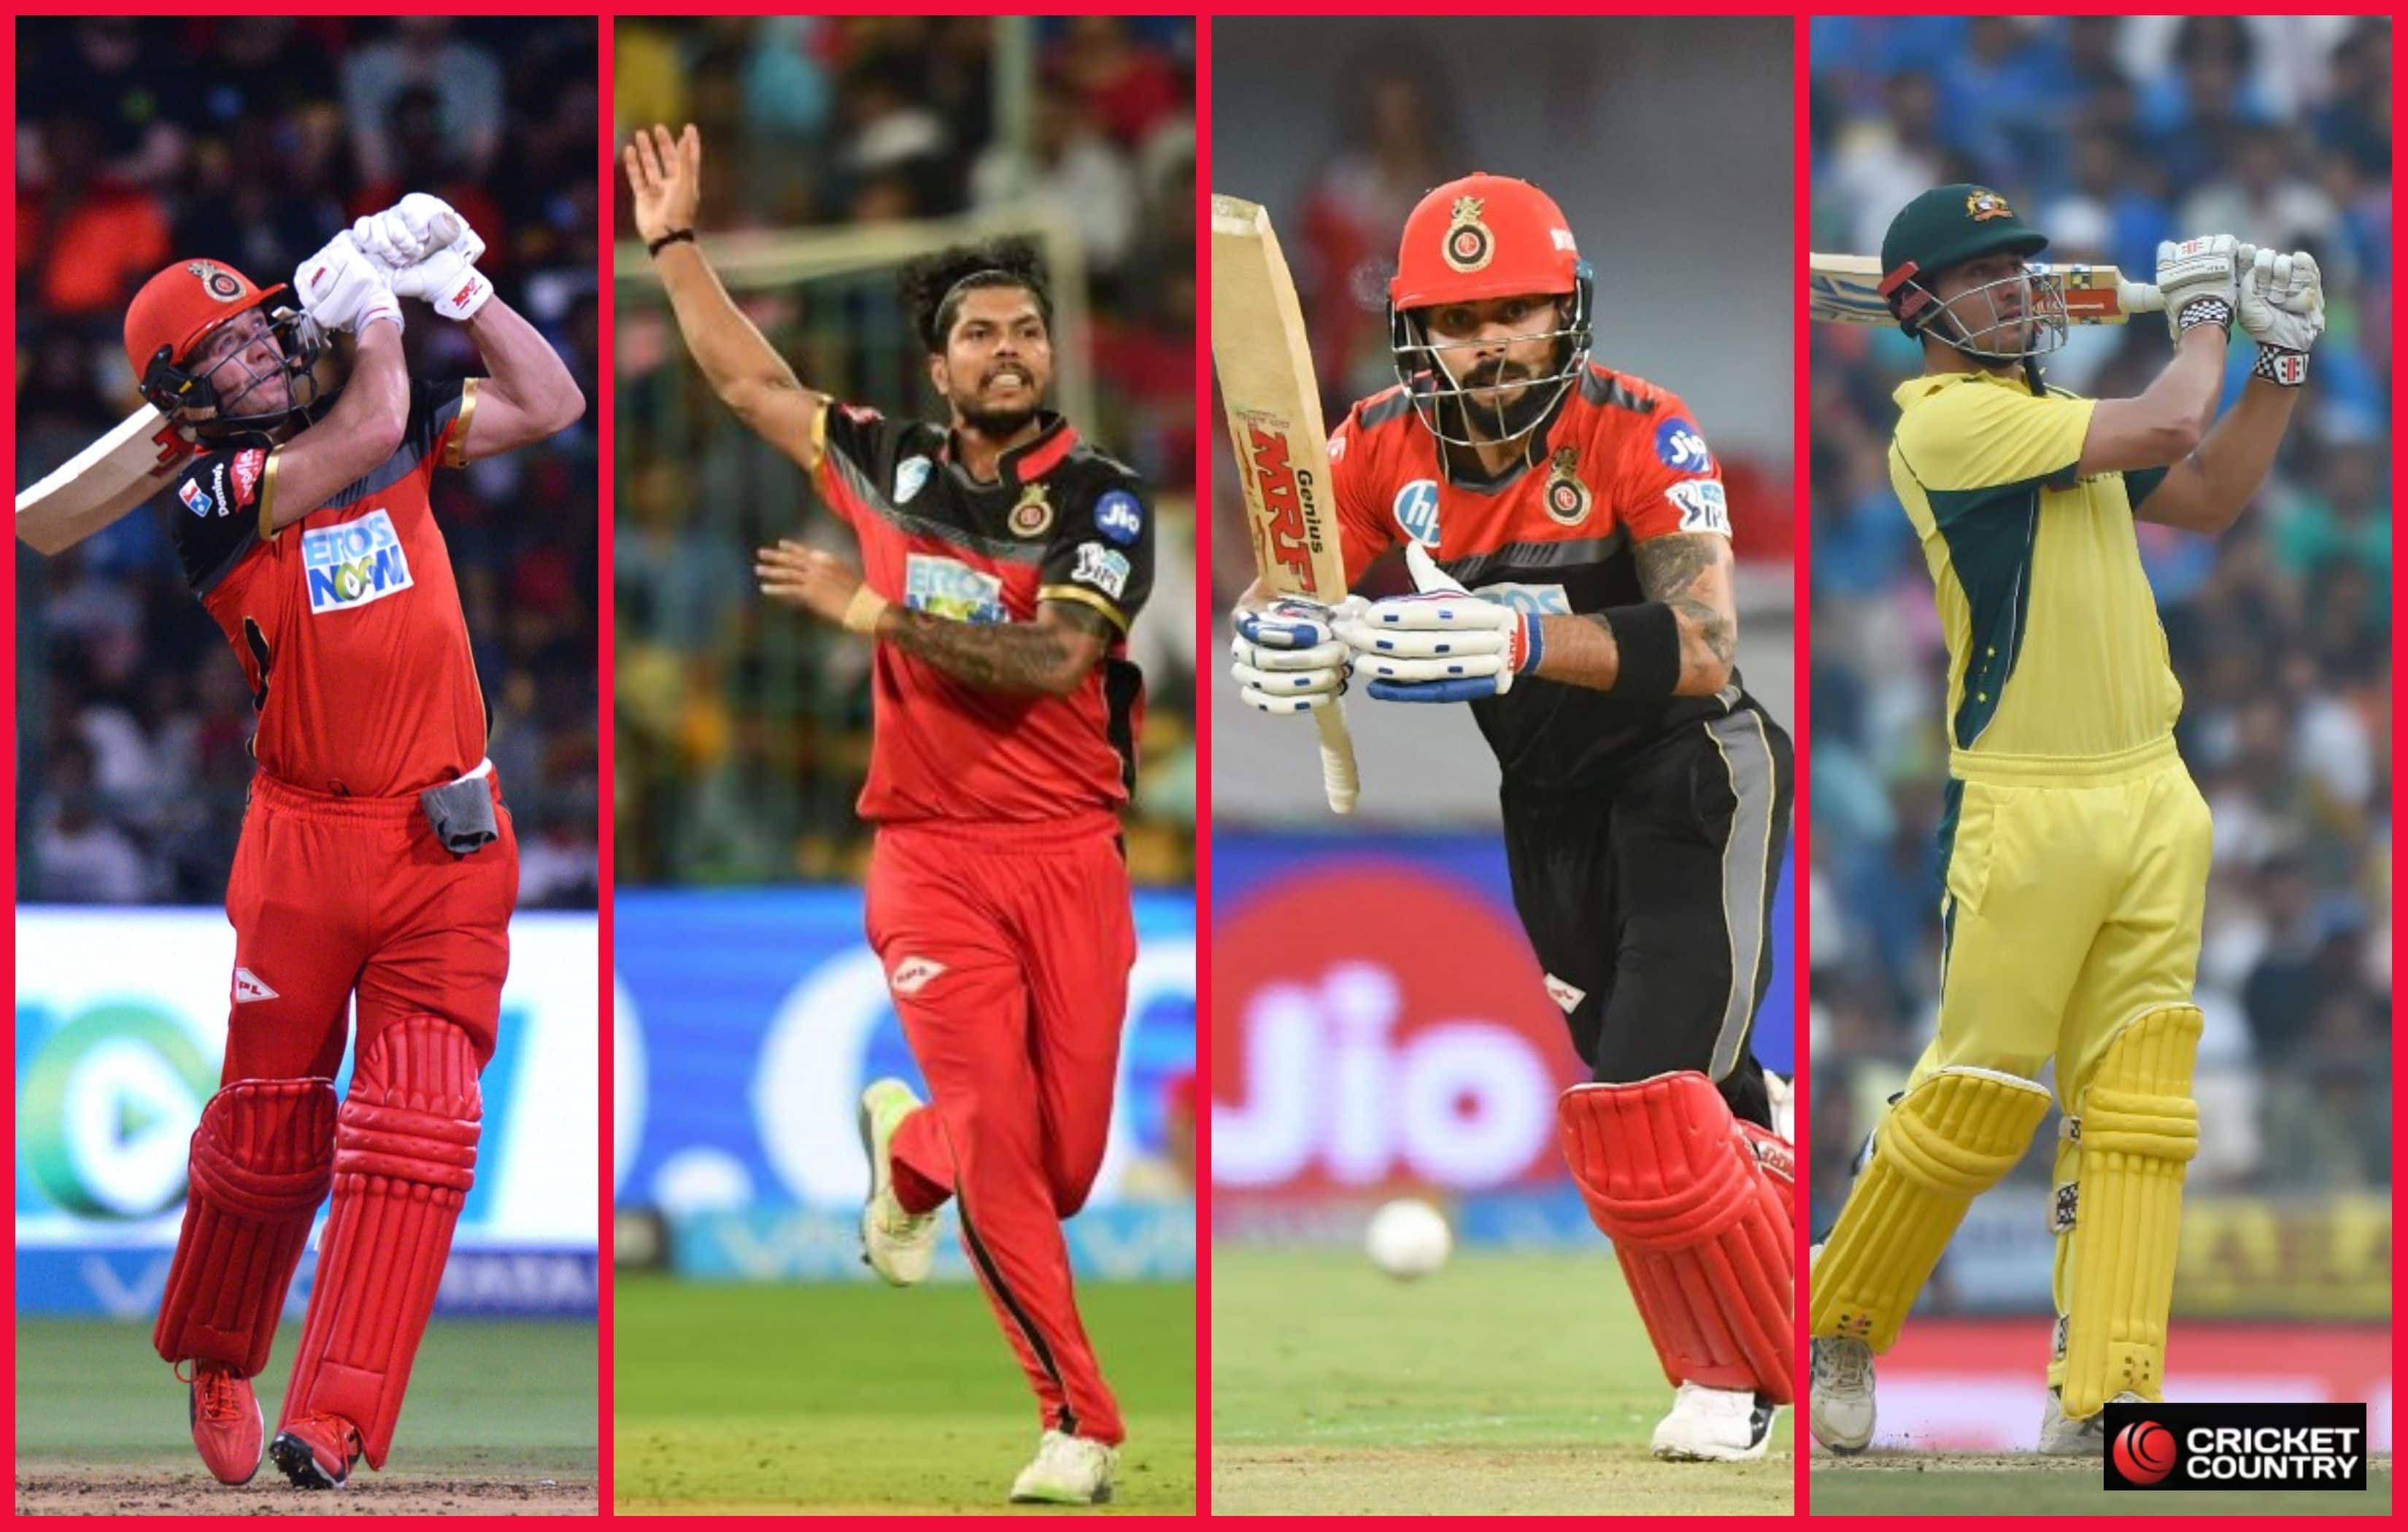 Royal Challengers Bangalore IPL team